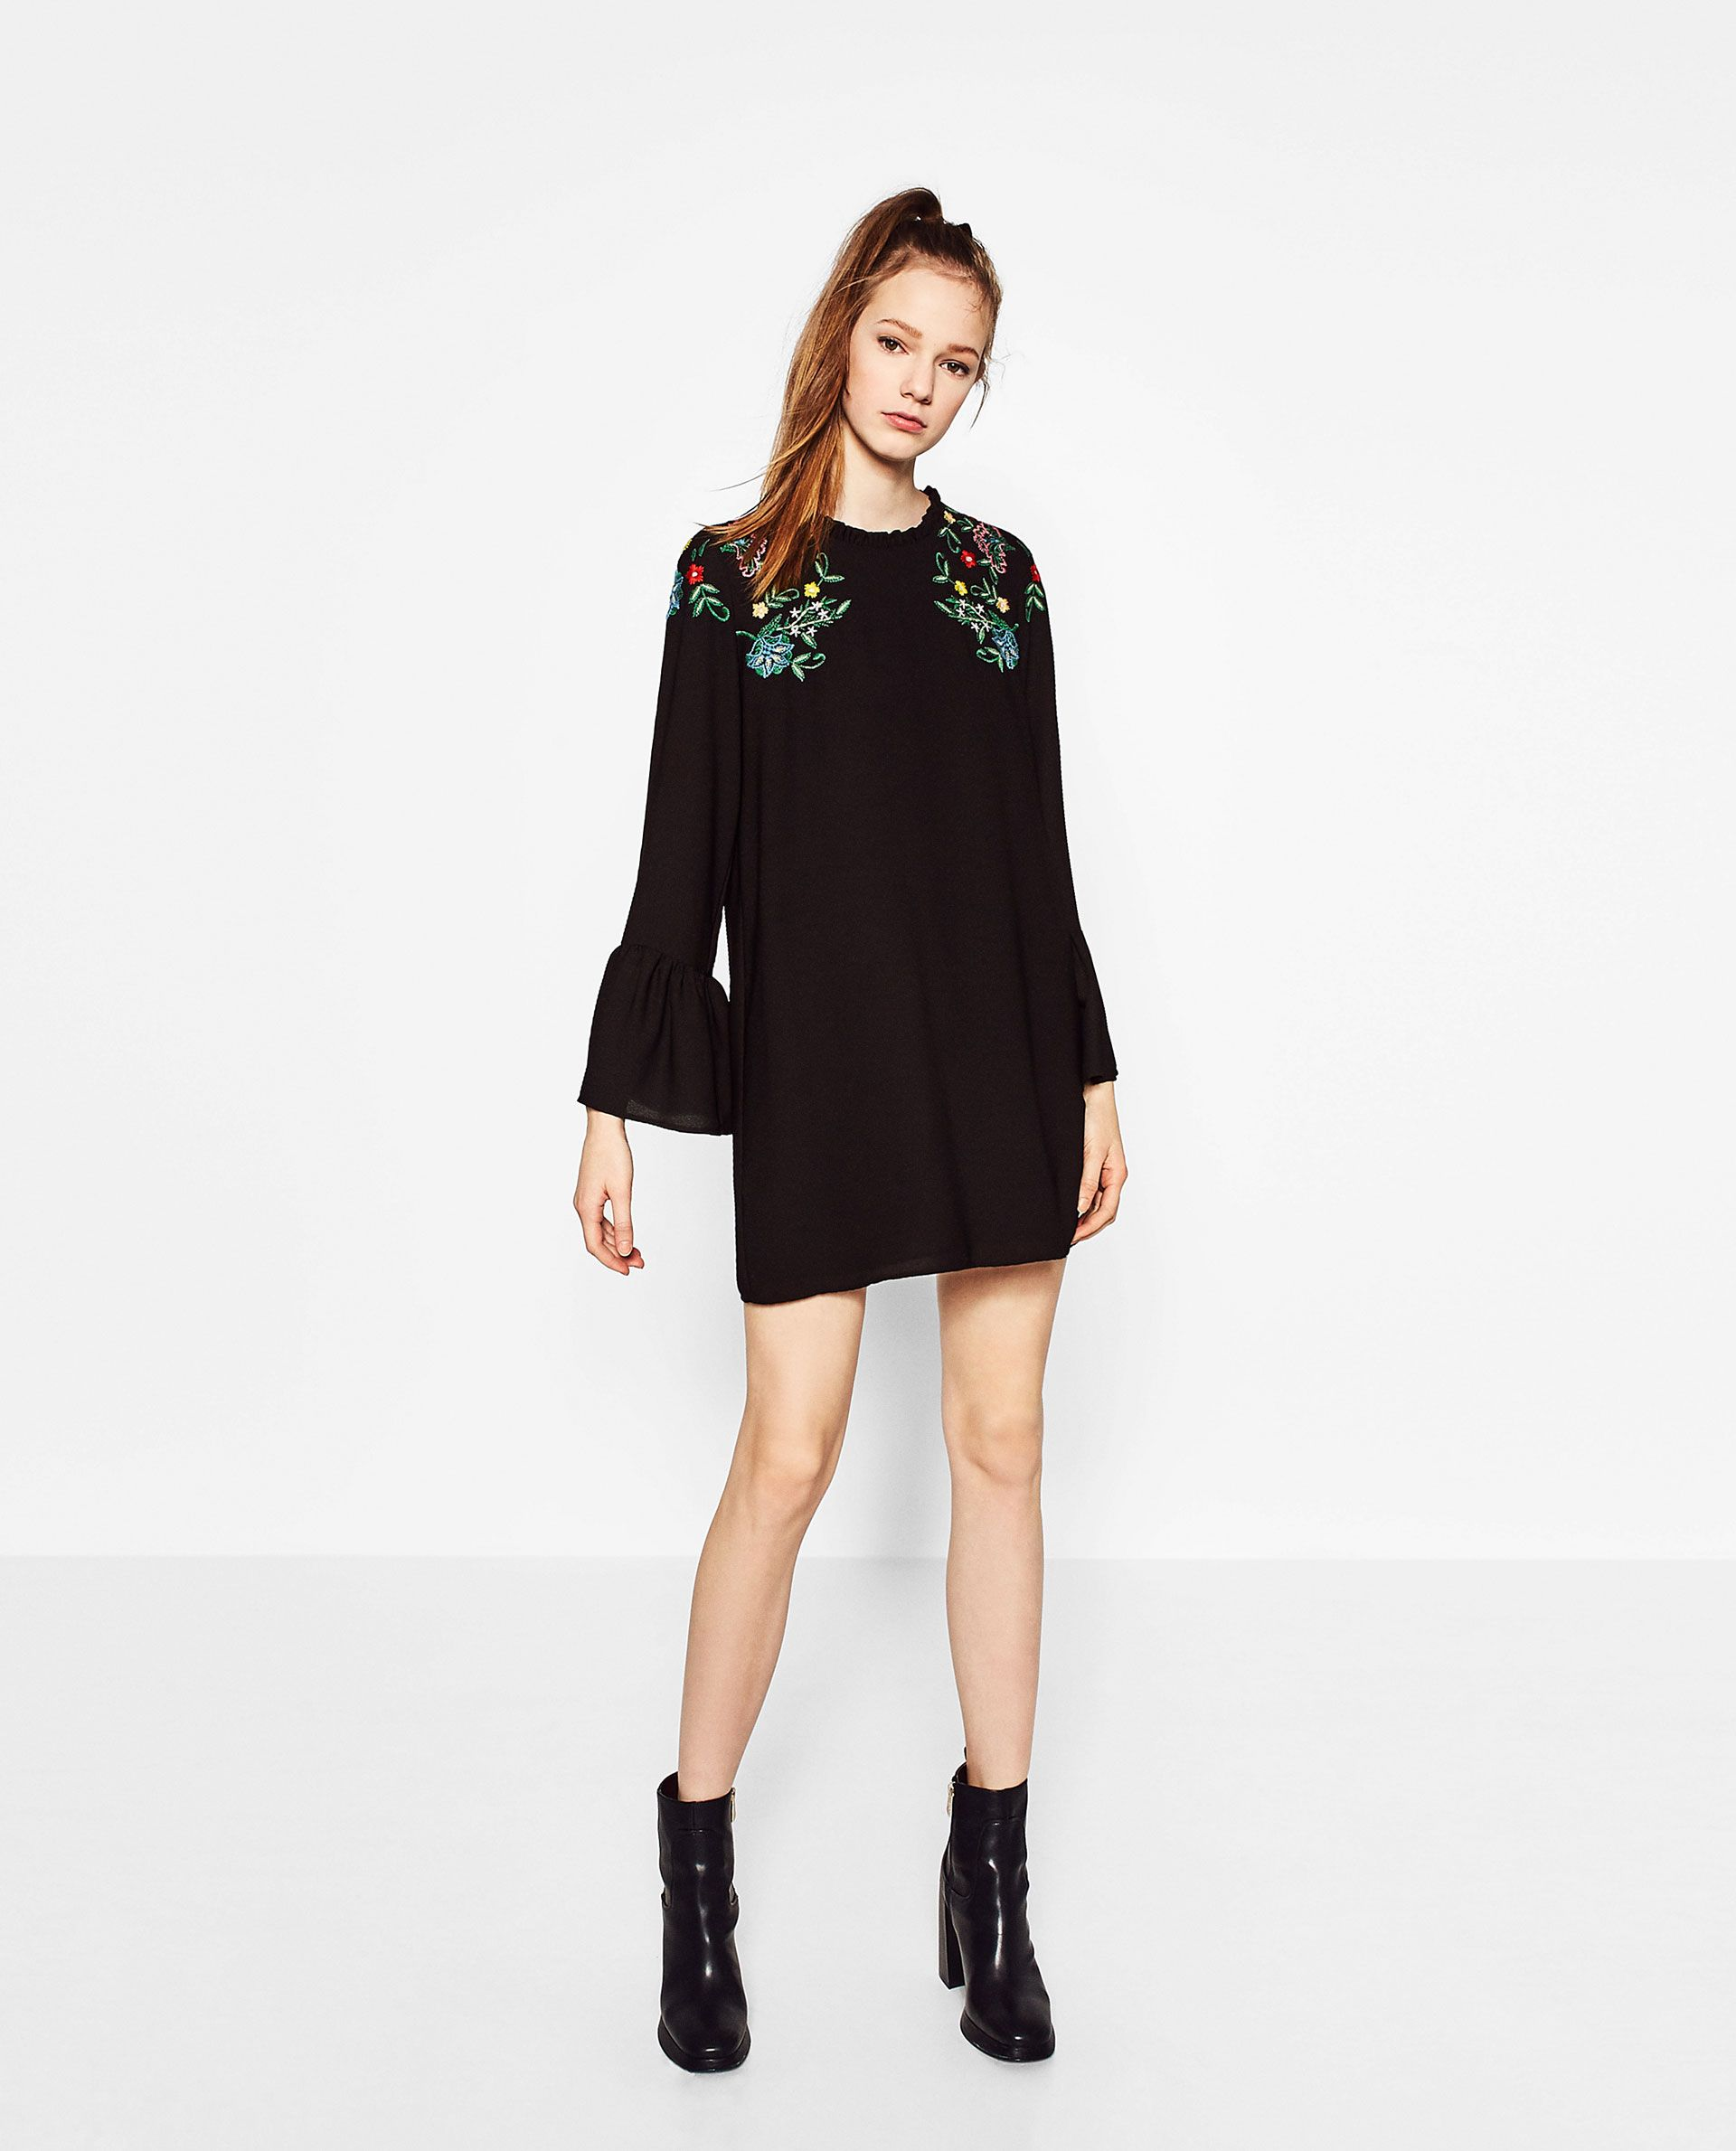 9dba75c8 FRILLED EMBROIDERED DRESS | zara. | Dresses, Fashion dresses, Zara ...